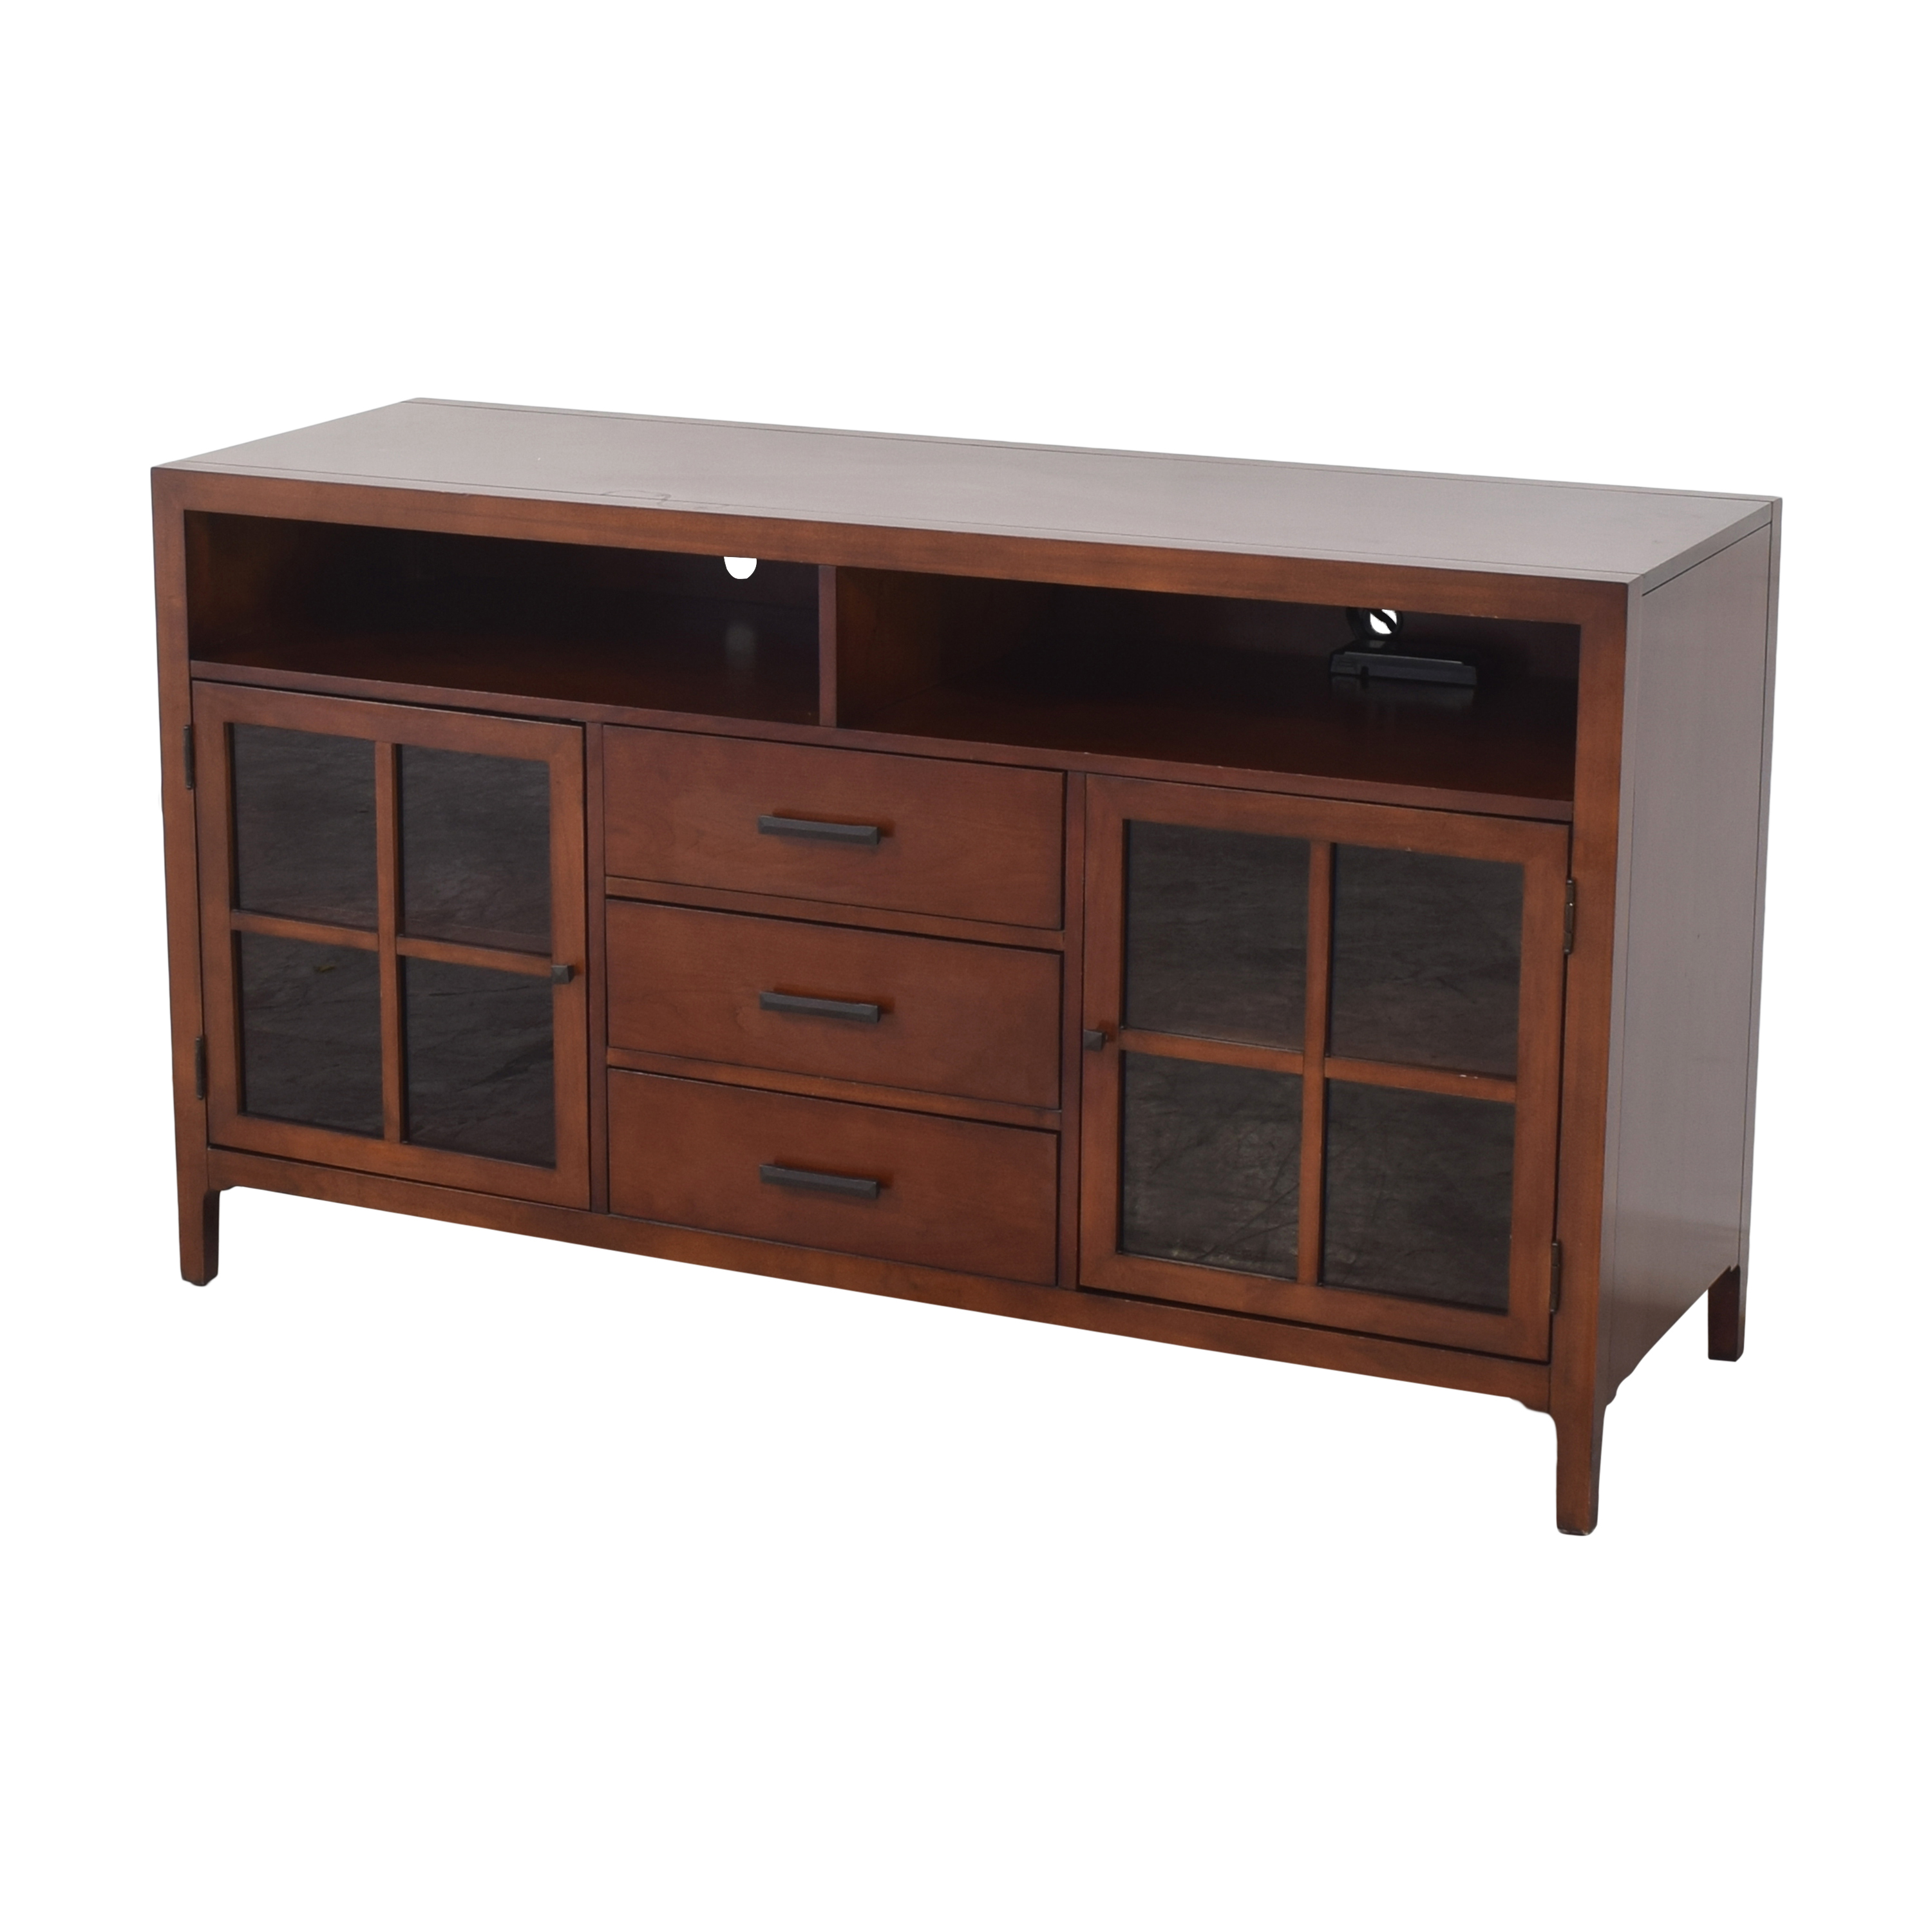 shop Raymour & Flanigan Entertainment Console by Bernhardt Raymour & Flanigan Storage